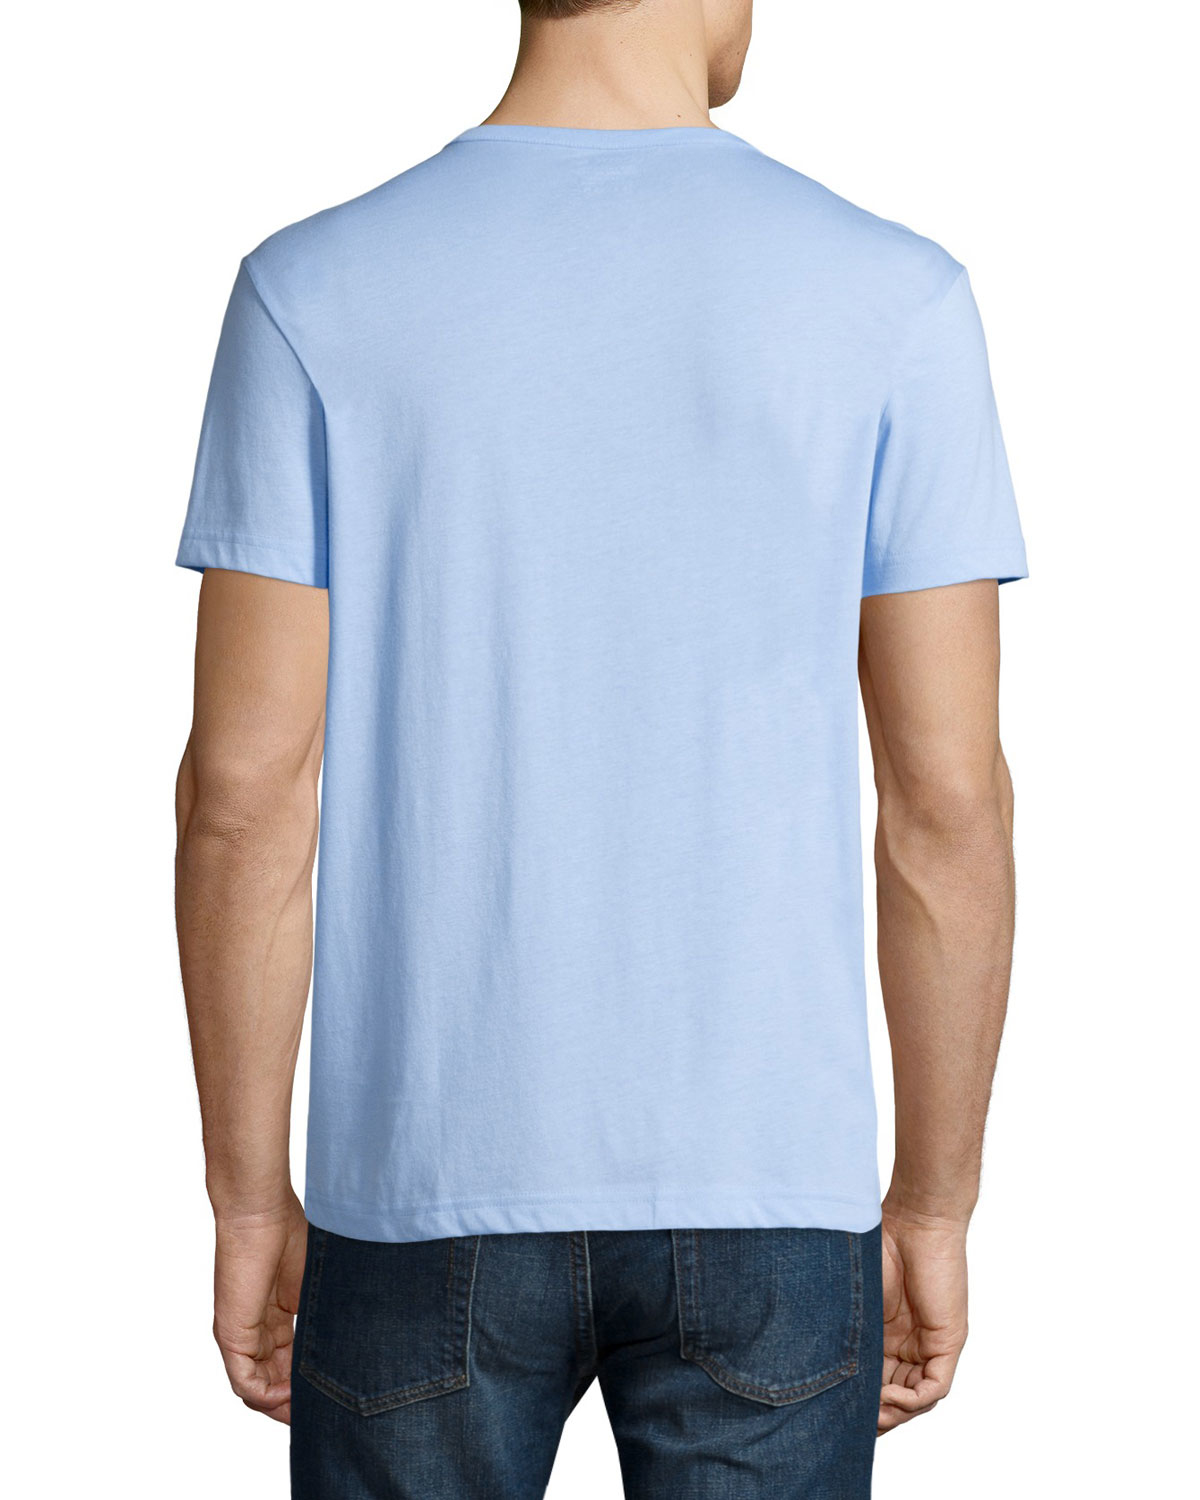 Lacoste short sleeve henley shirt in blue for men lyst for Short sleeve lacoste shirt